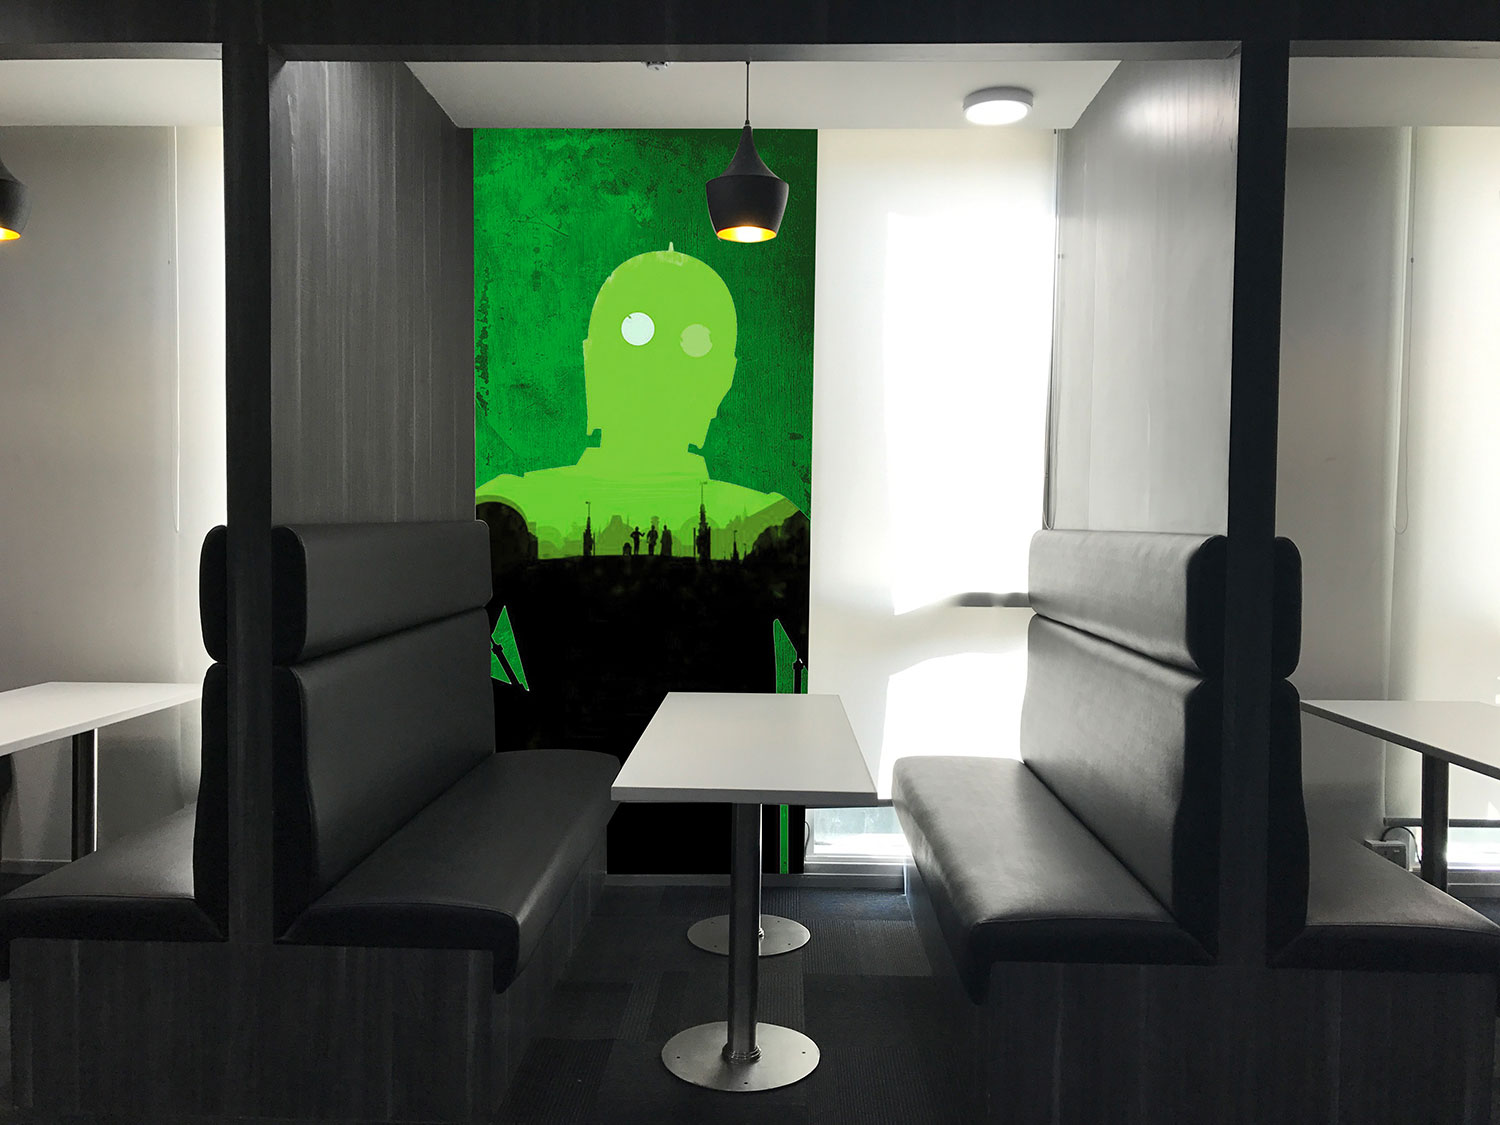 Sci-fi themed work pods